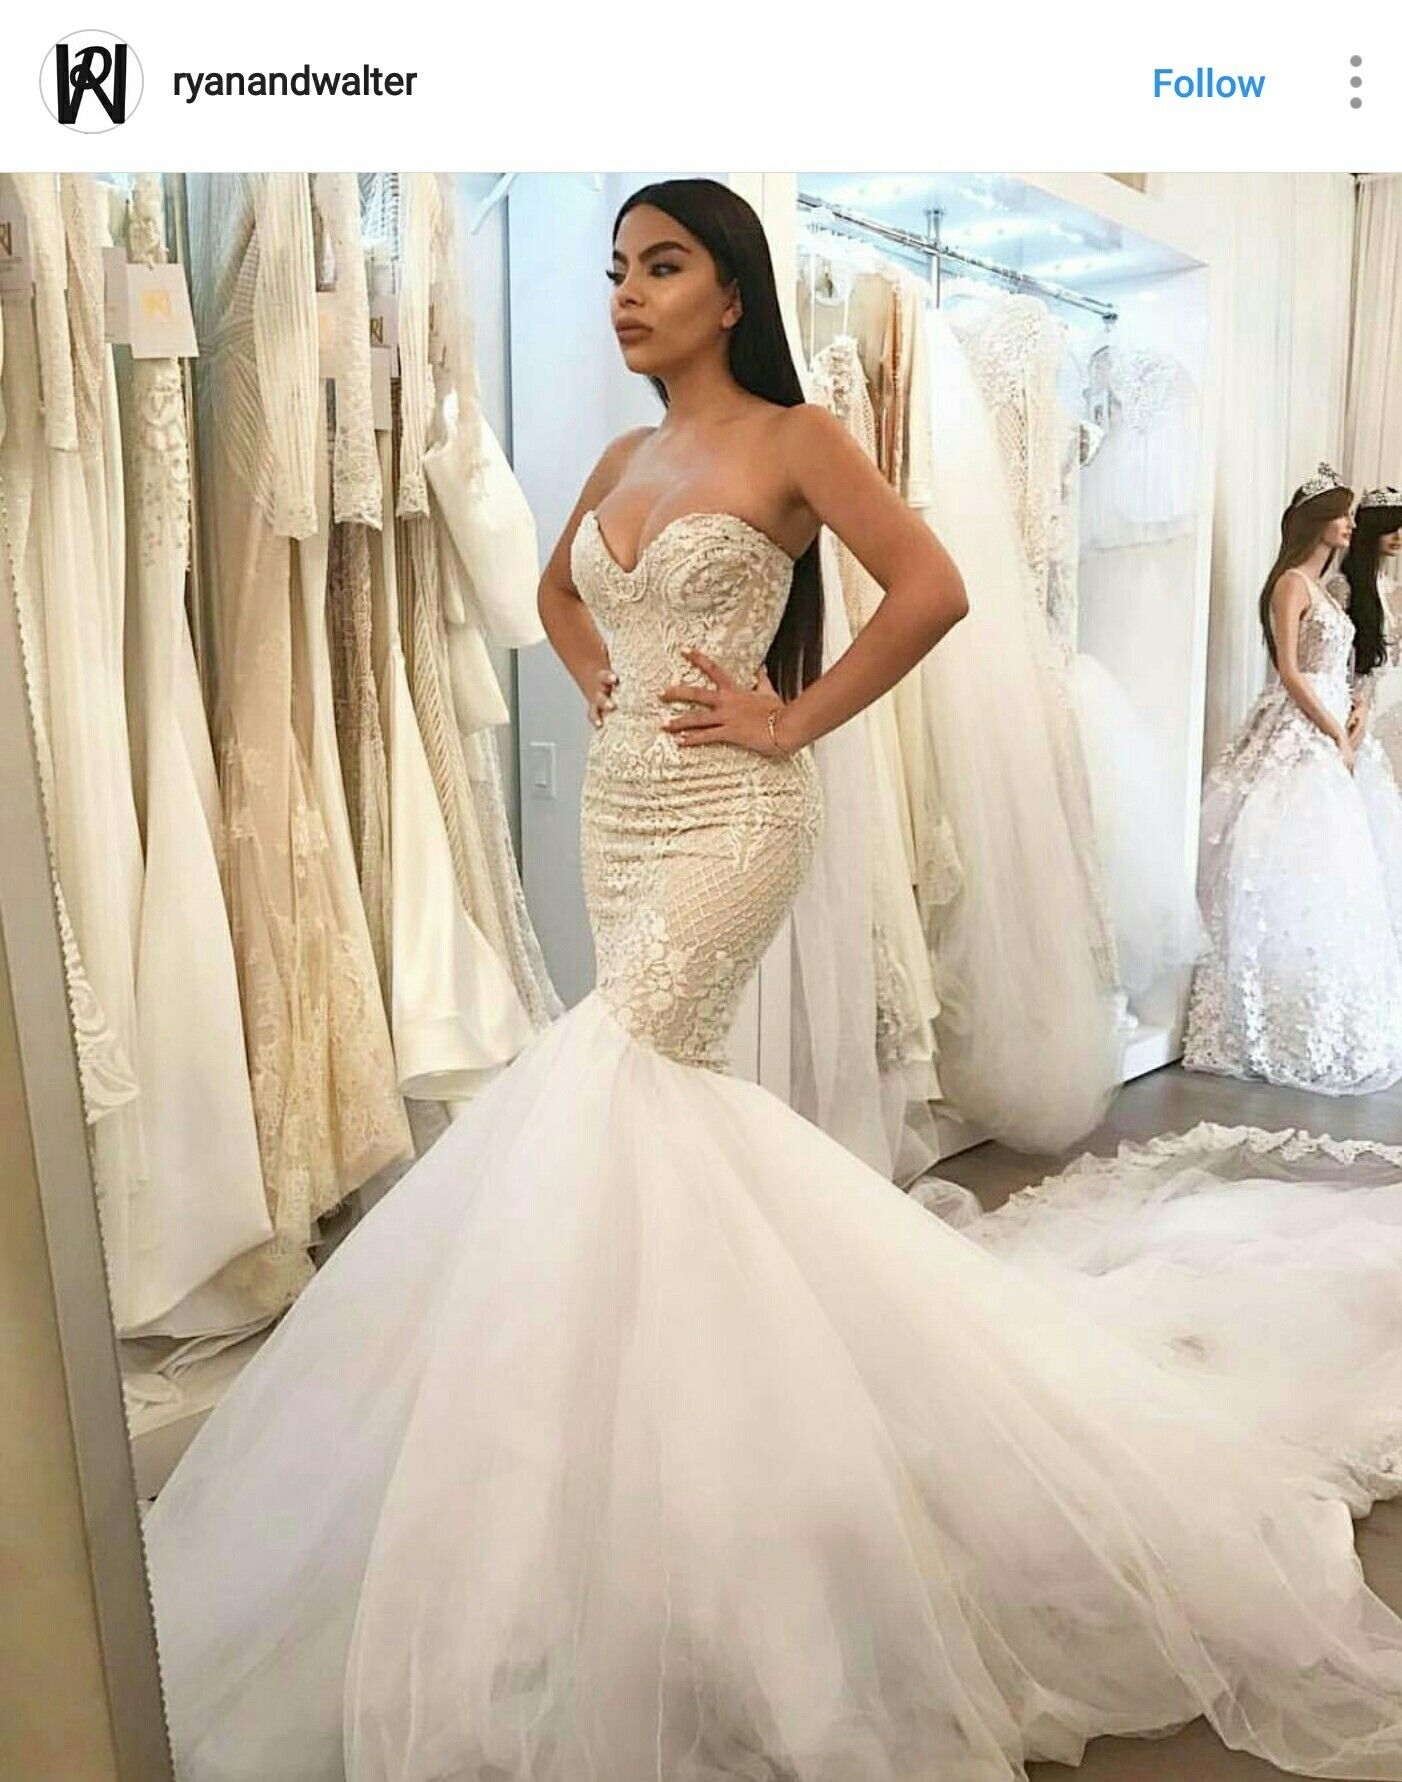 Ryan and Walter. This is one of the most beautiful wedding gowns I ...